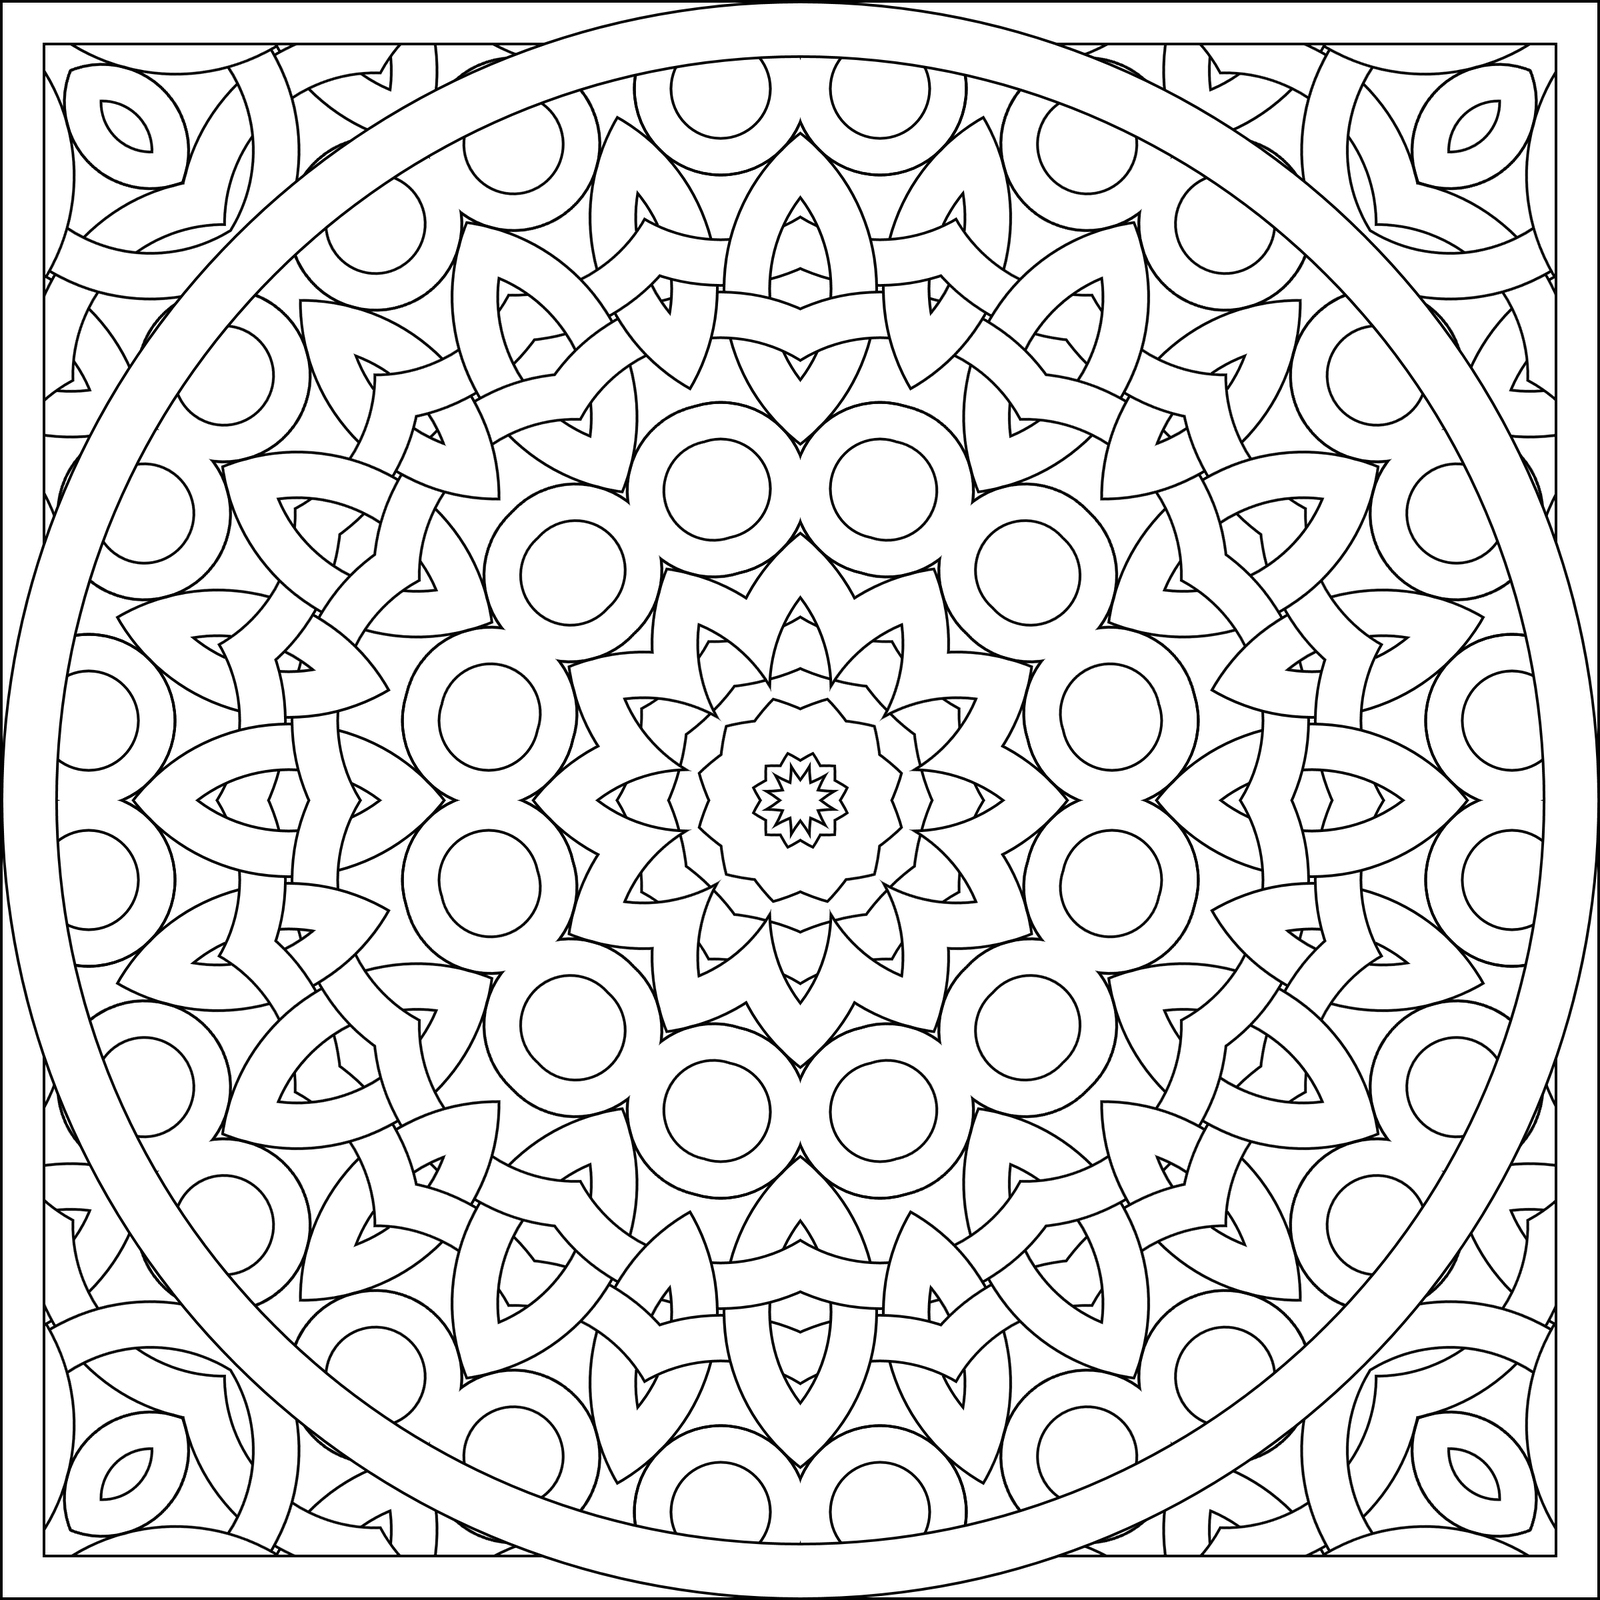 pattern coloring pages for kids 5 zentangle pattern design coloring pages pattern kids for coloring pages